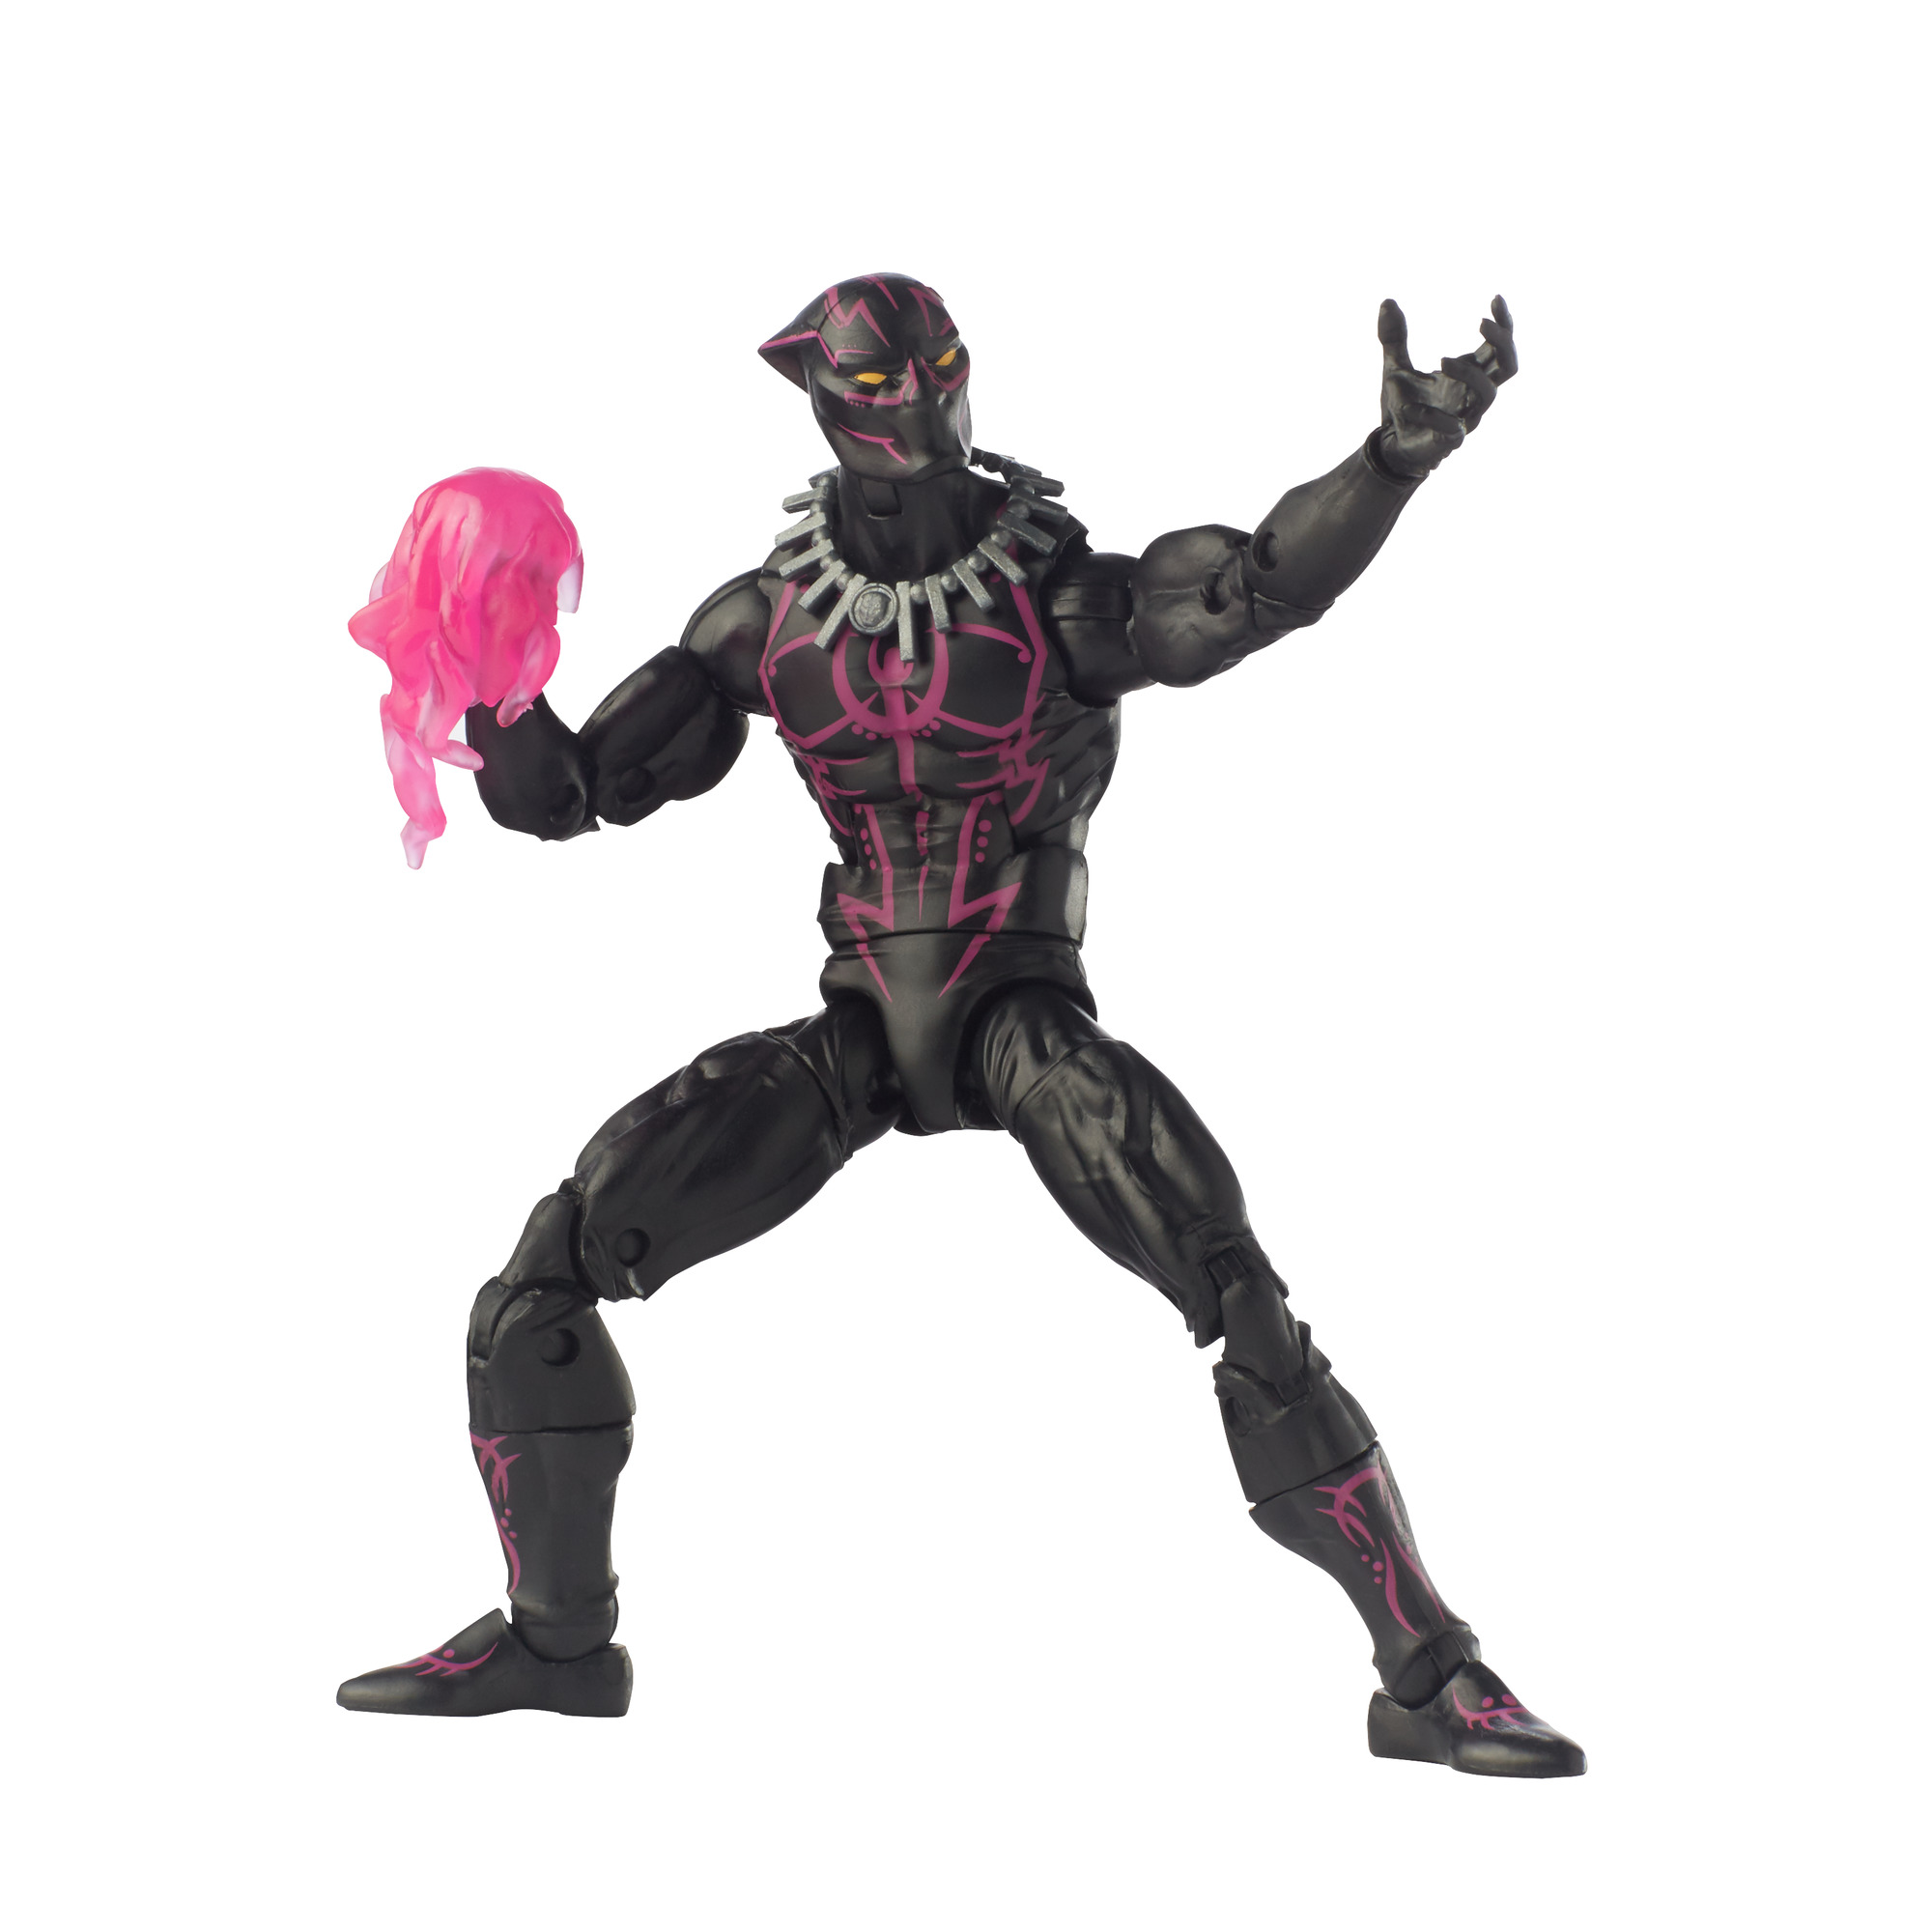 Marvel Legends Series 6 Inch Vibranium Suit Black Panther by Marvel